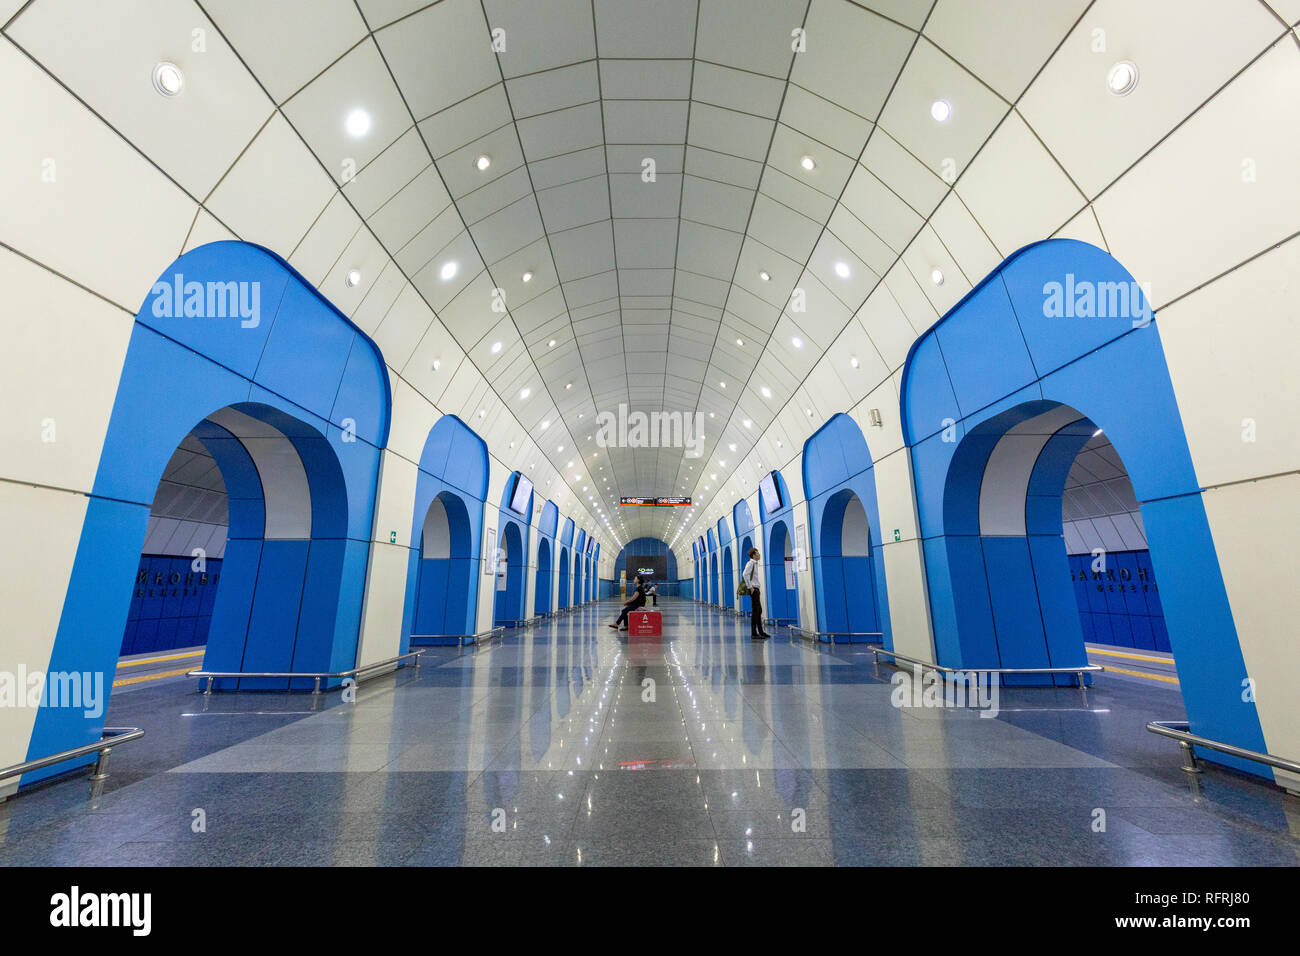 Baikonur metro station, in Almaty, Kazakhstan. Metro station is named after Baikonur space centre in Kazkahstan - Stock Image